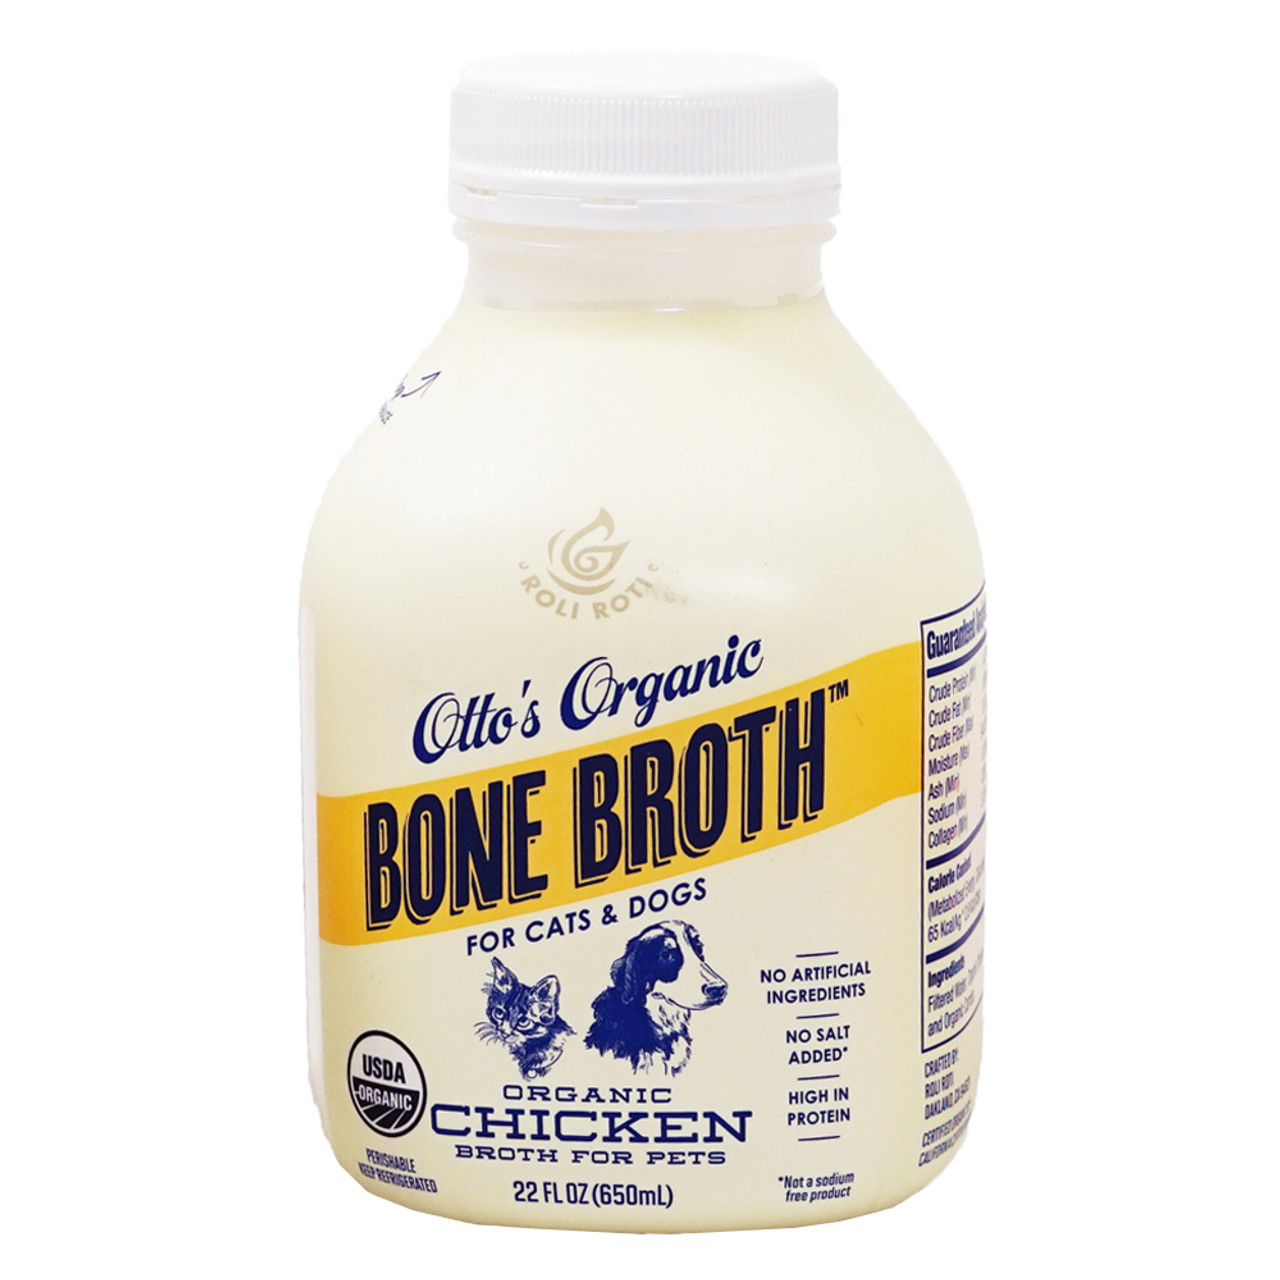 Otto's Organic Frozen Chicken Bone Broth For Cats & Dogs